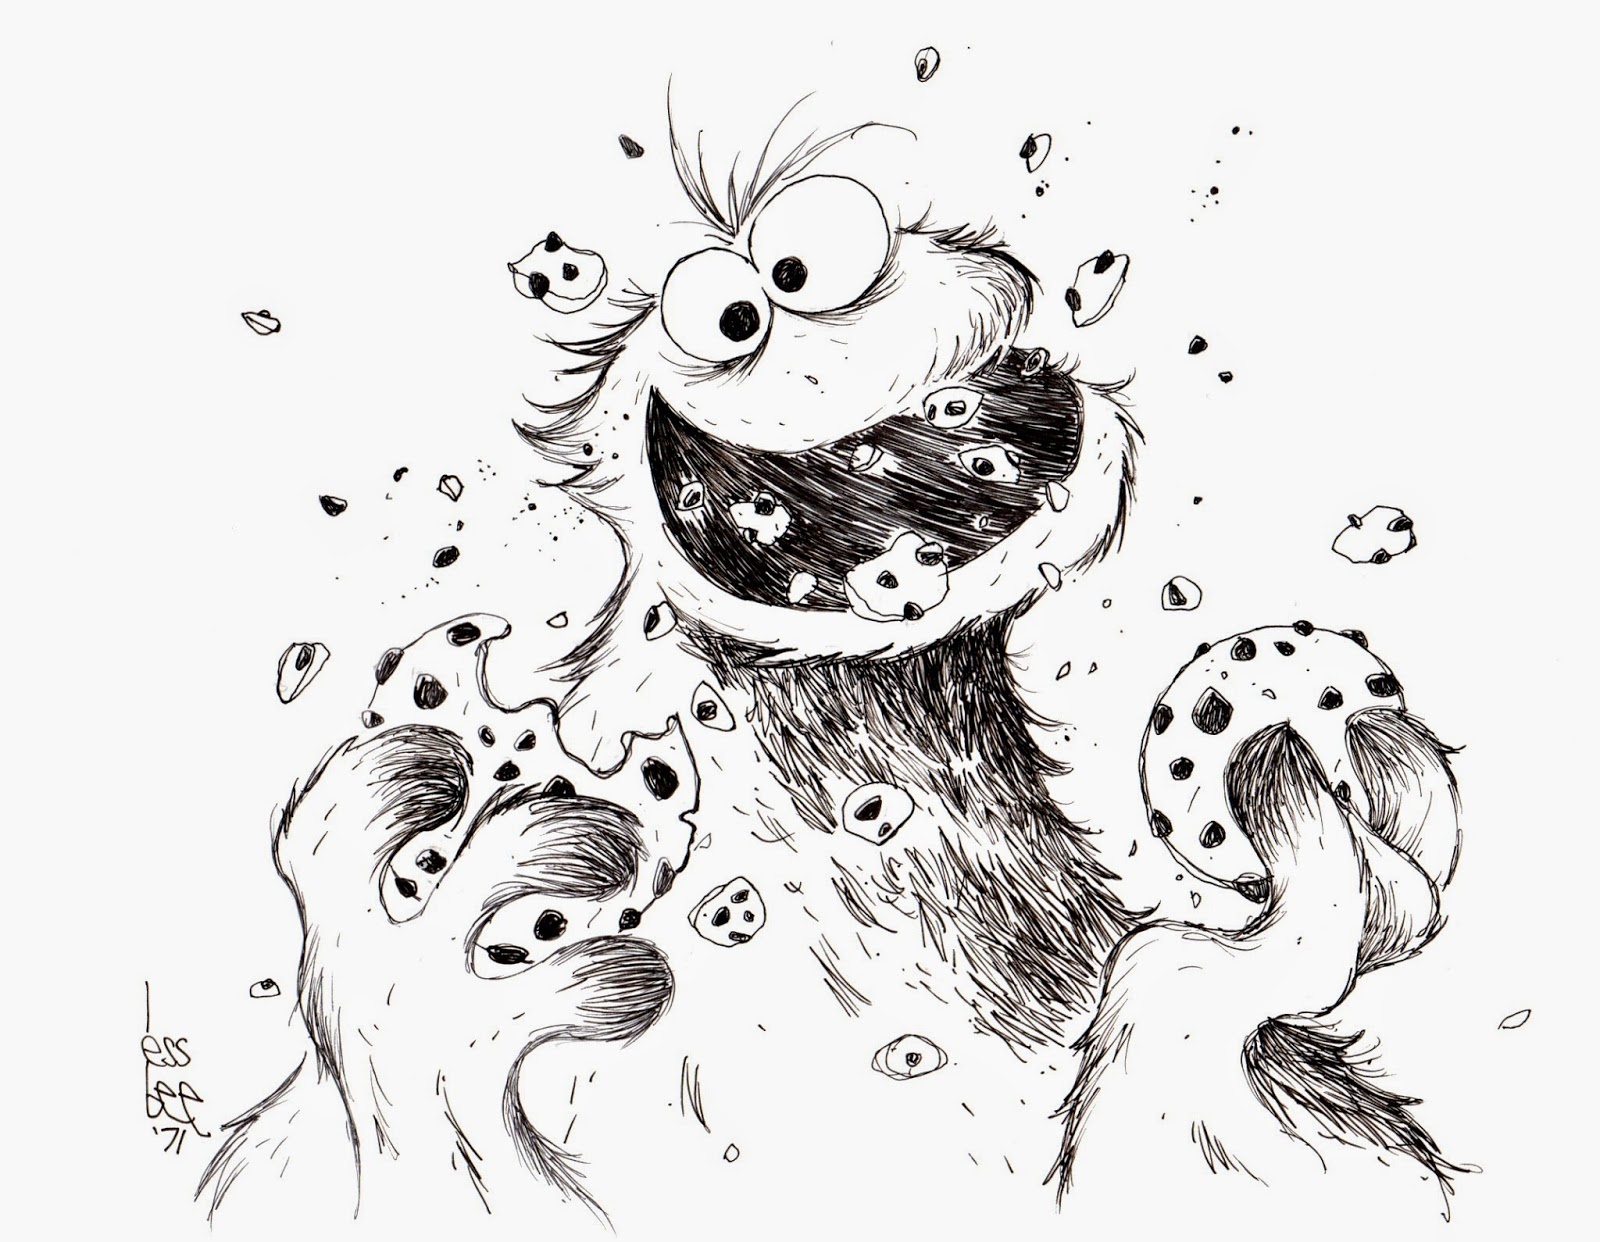 Cookie Monster Pencil Drawing Cookie monster sketchCookie Monster Pencil Drawing